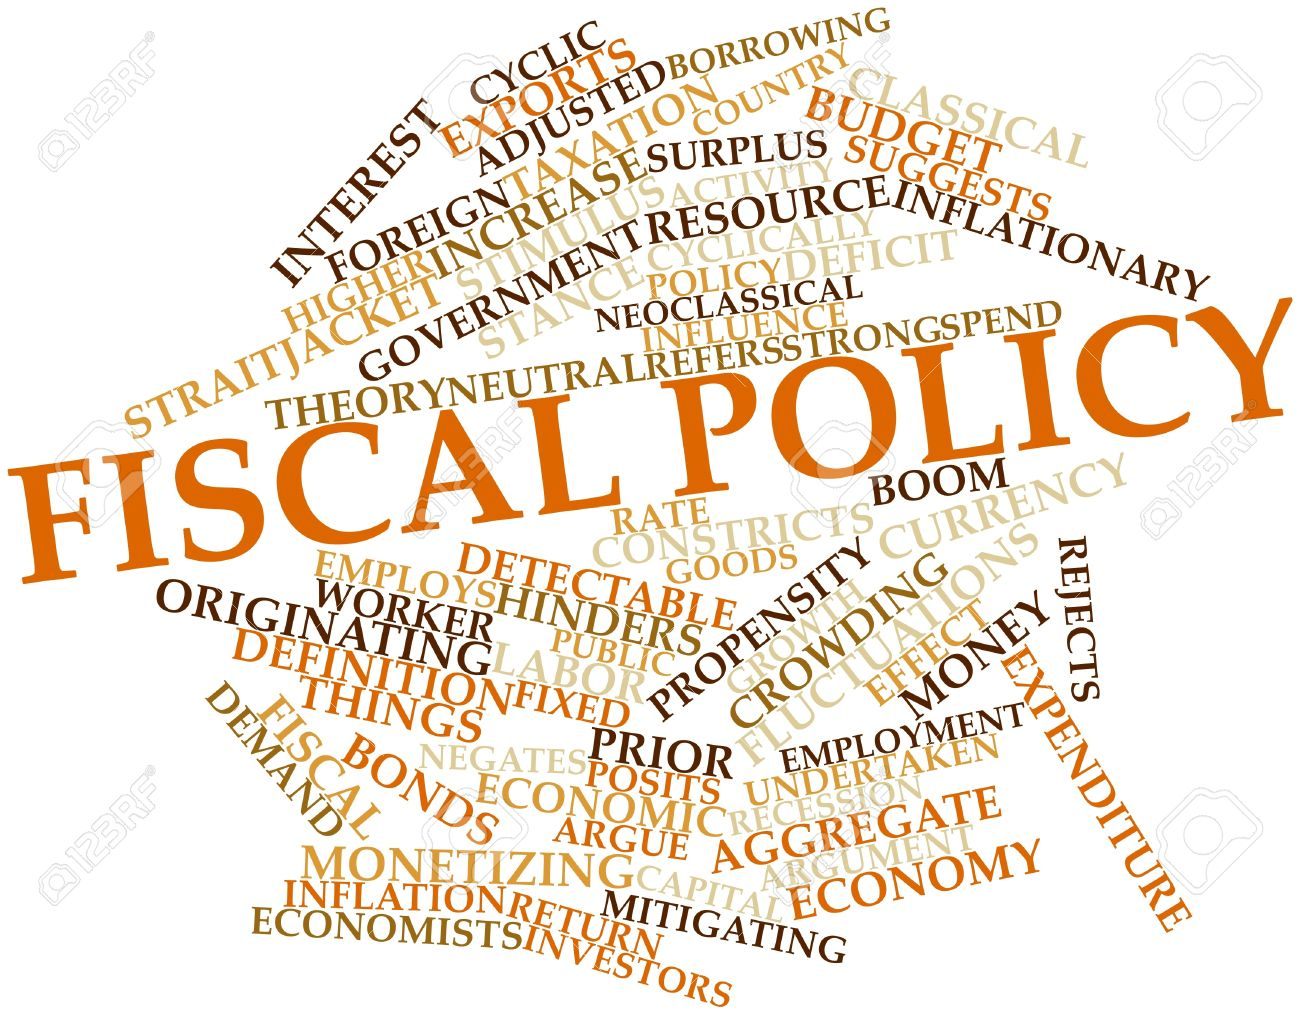 Definition Of Fiscal Policy